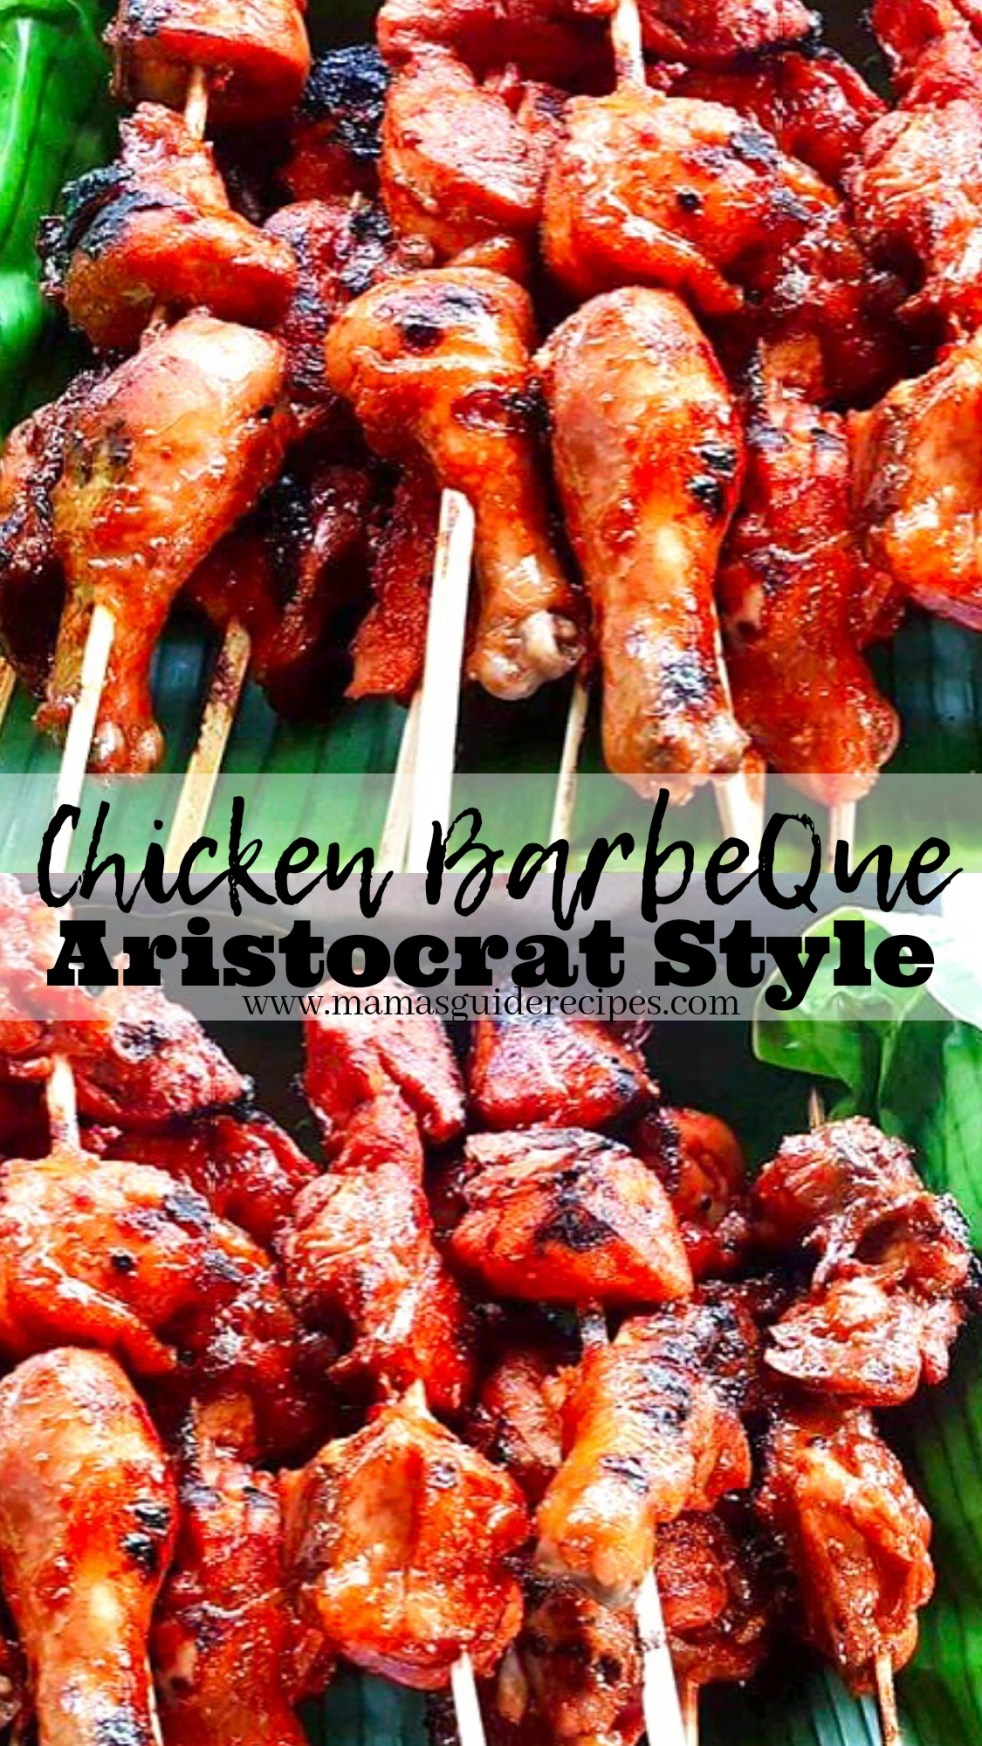 CHICKEN BARBECUE (ARISTOCRAT STYLE)